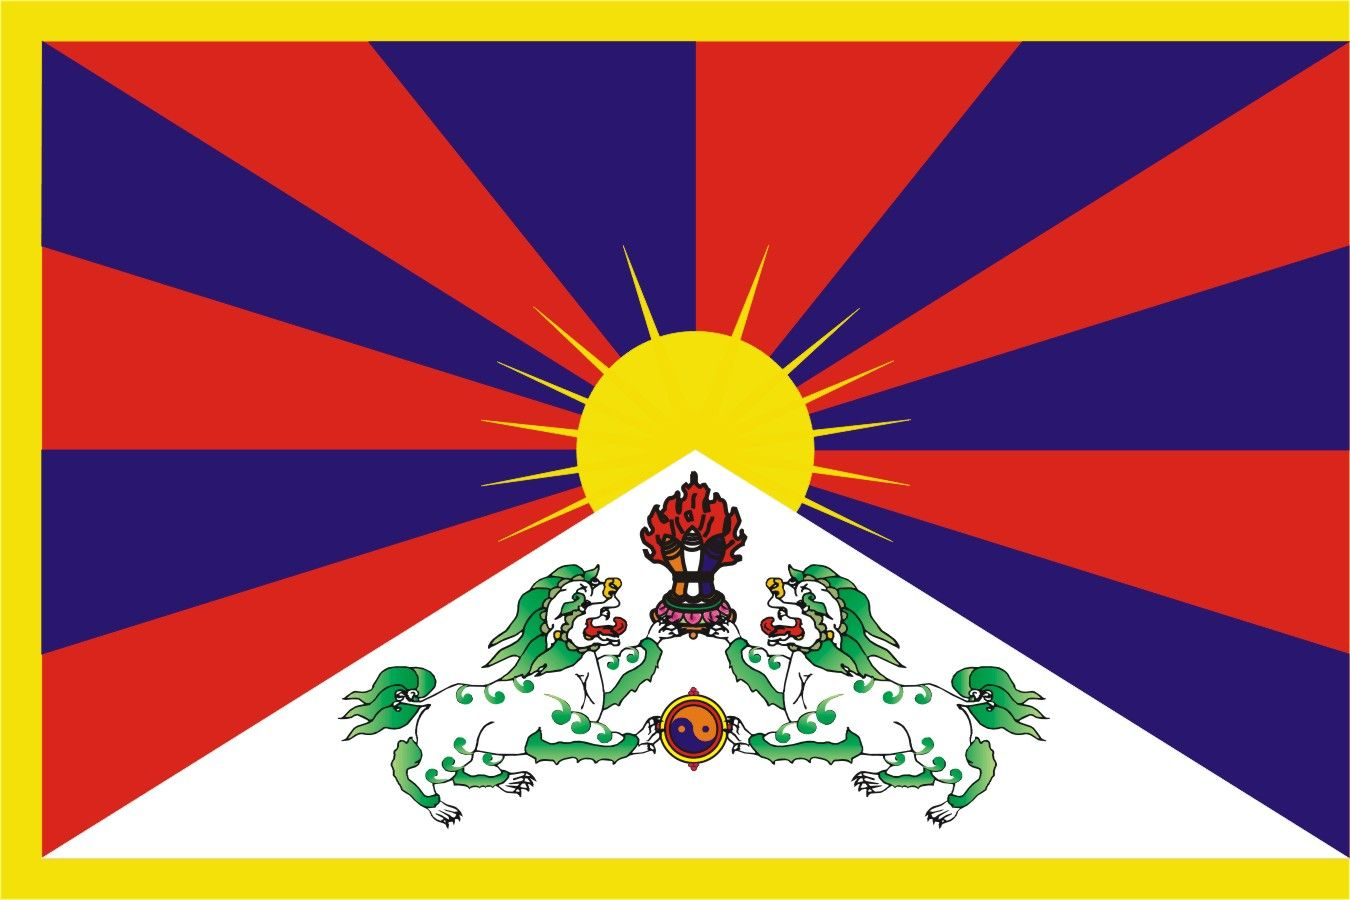 Free Tibet Made In China